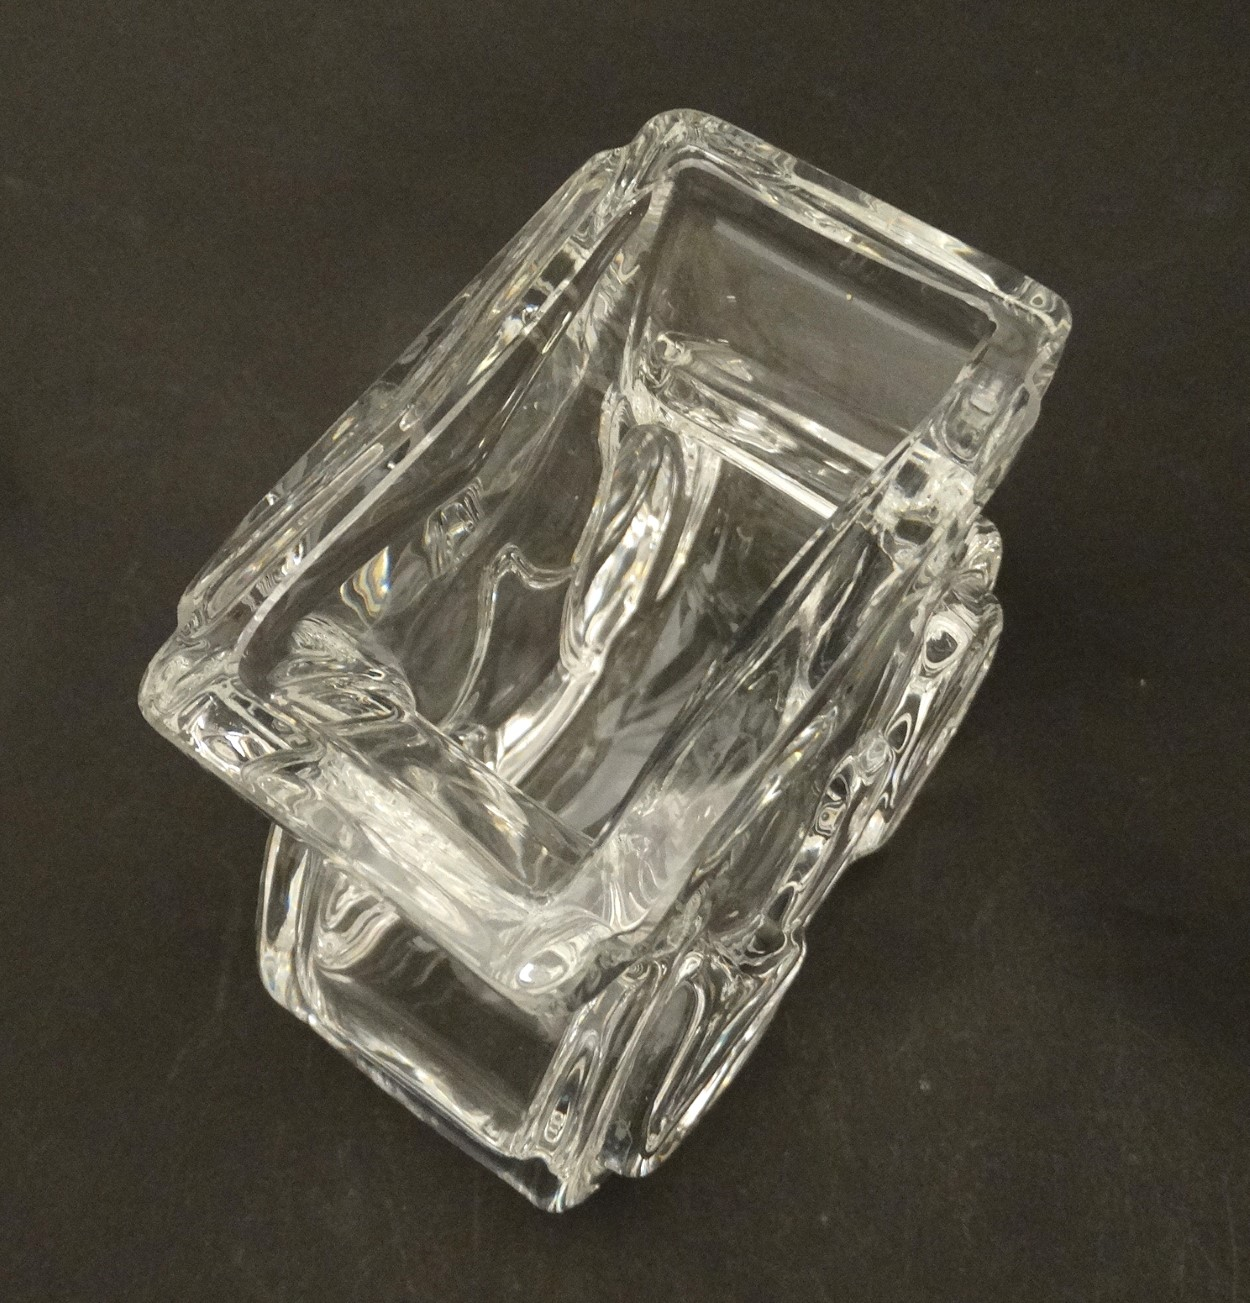 Lot 118 - A mid 20thC Scandinavian Royal Krona glass vase, signed and numbered to base,